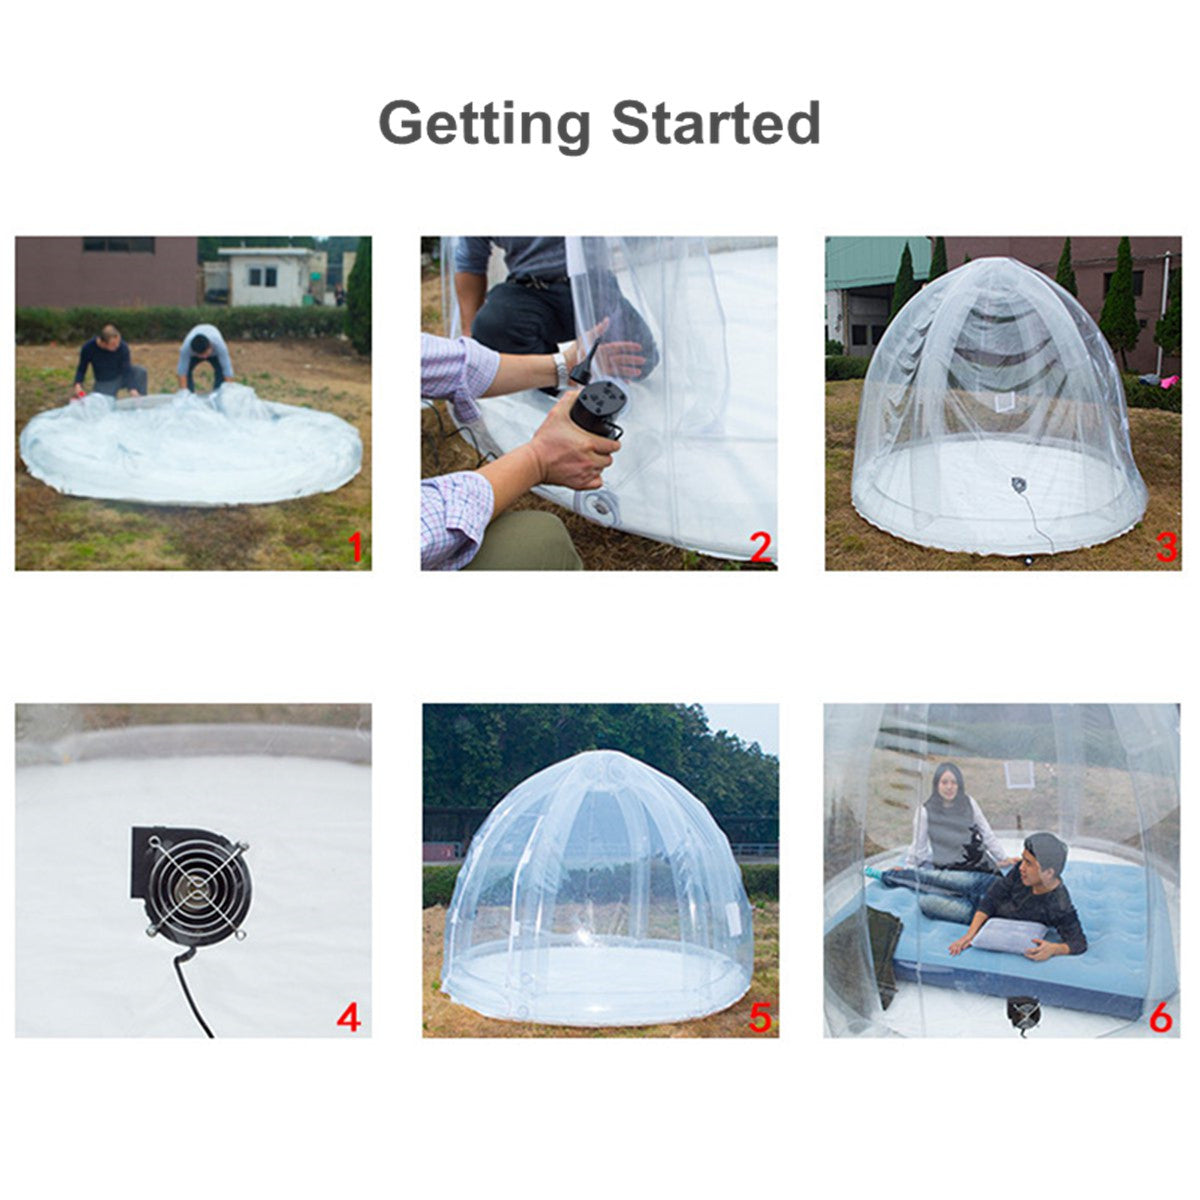 3m Luxury Inflatable Bubble Tent Waterproof Outdoor Camping Stargazing Airblower